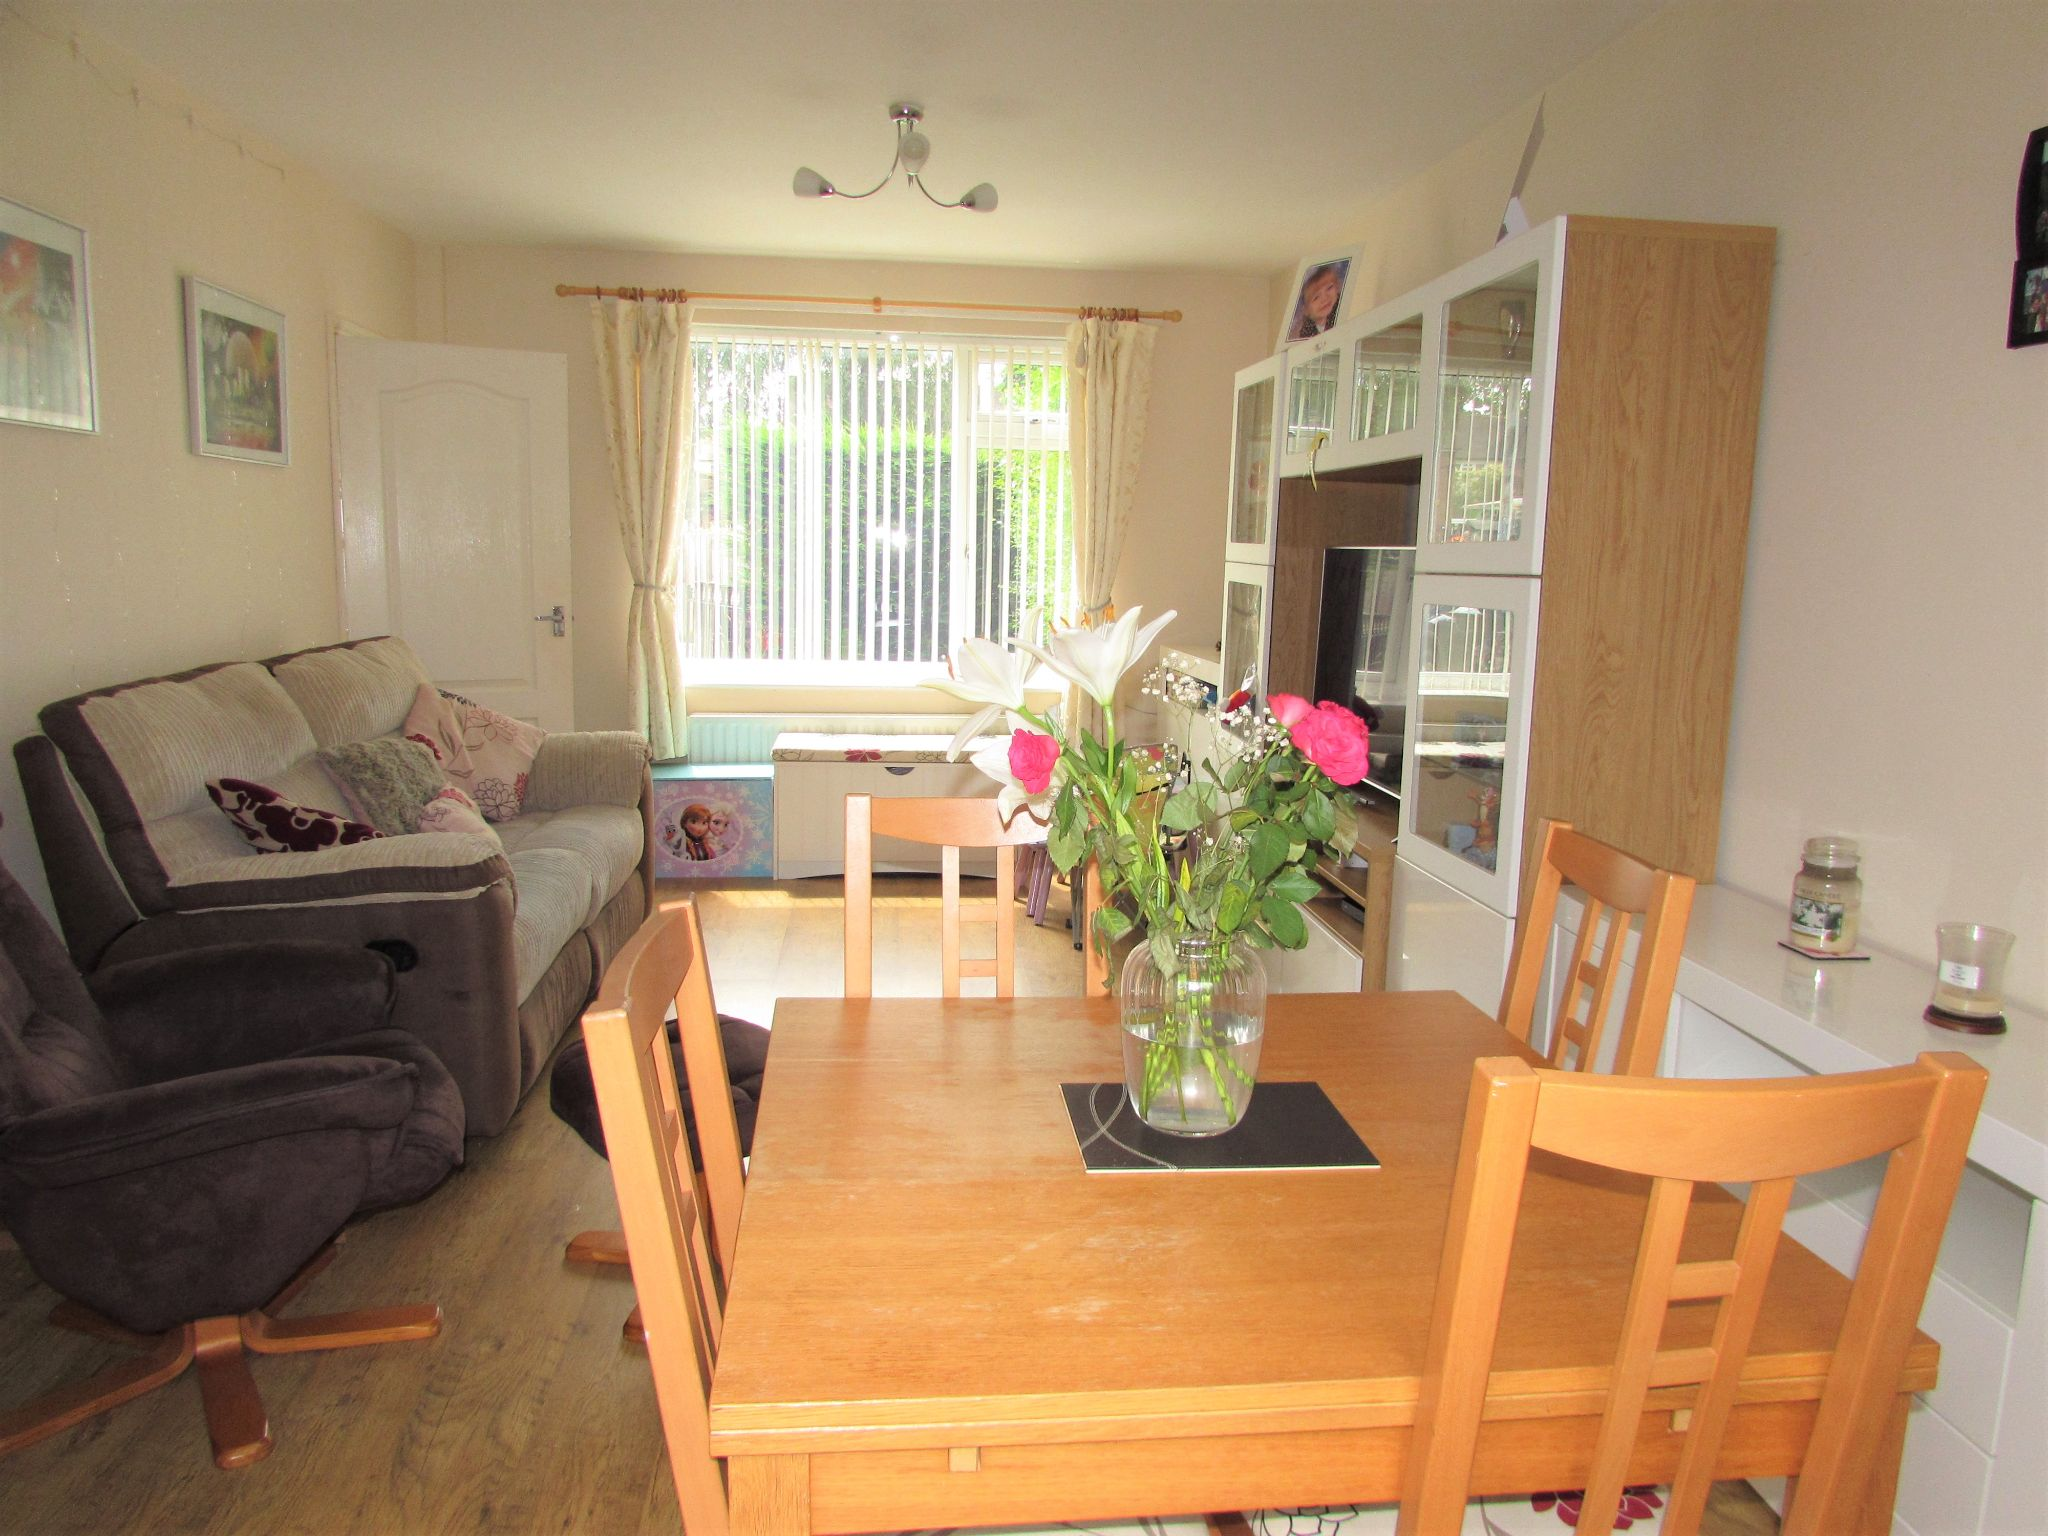 3 Bedroom Mid Terraced House For Sale - Living Room